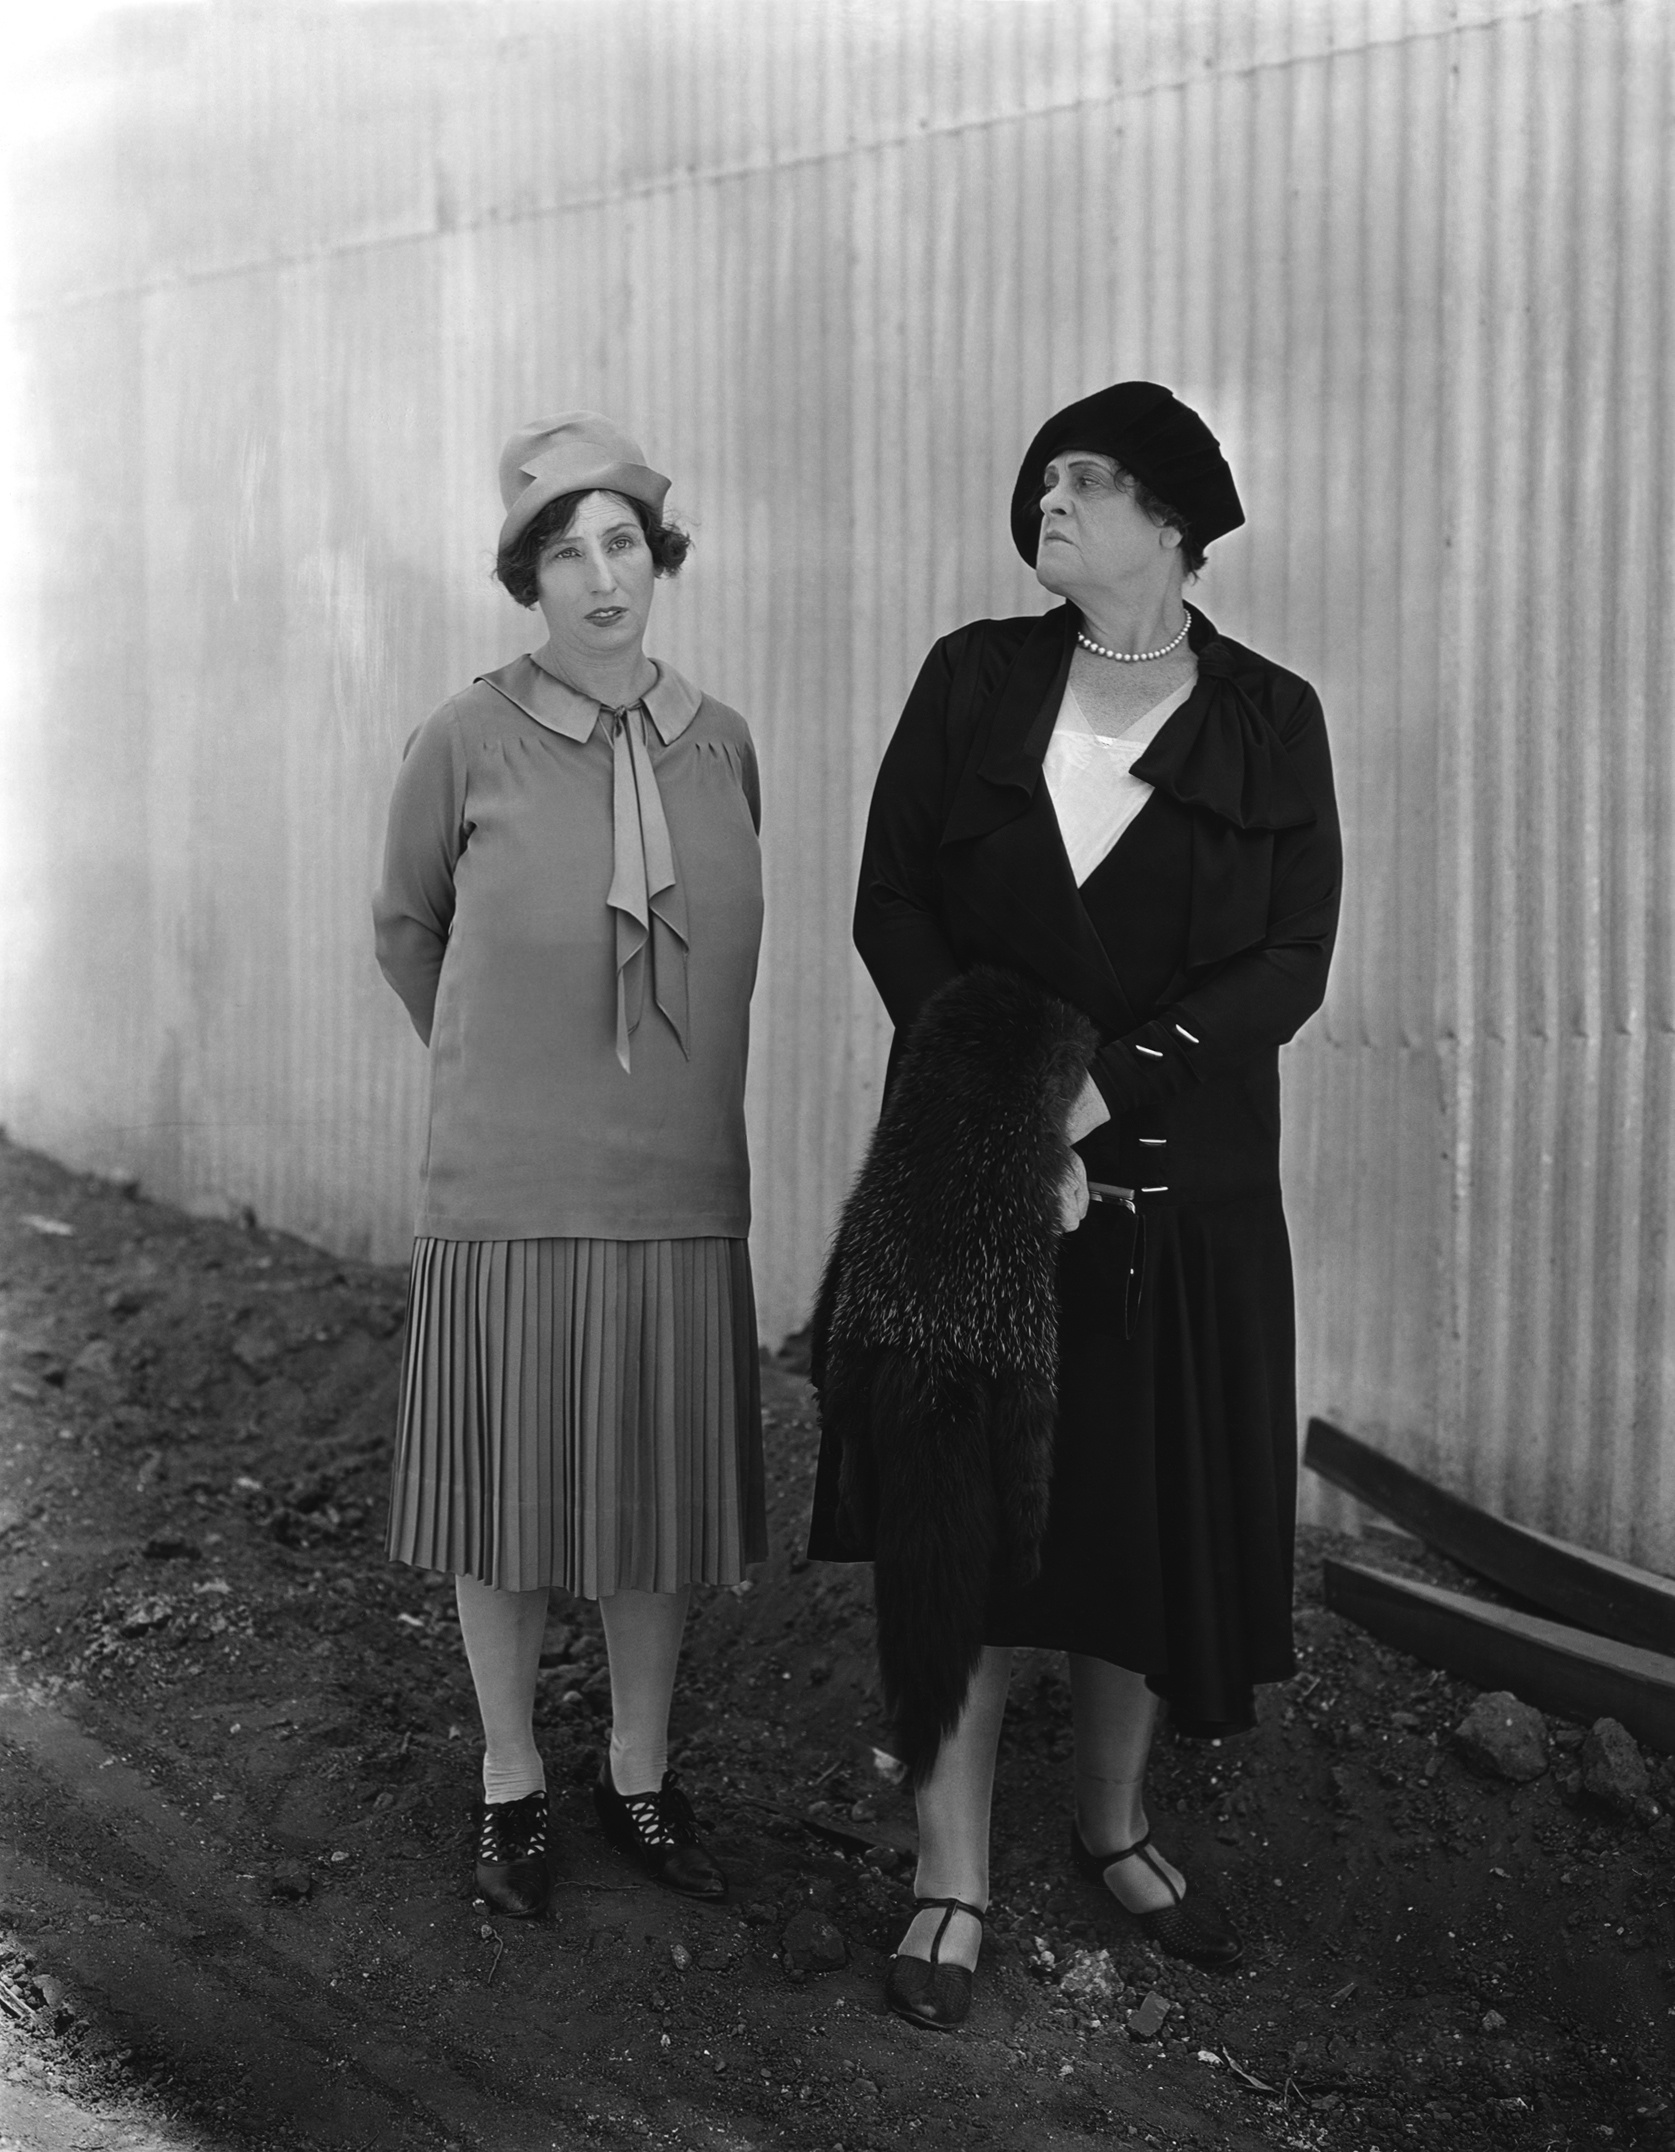 Marie Dressler and Polly Moran in Chasing Rainbows (1930)